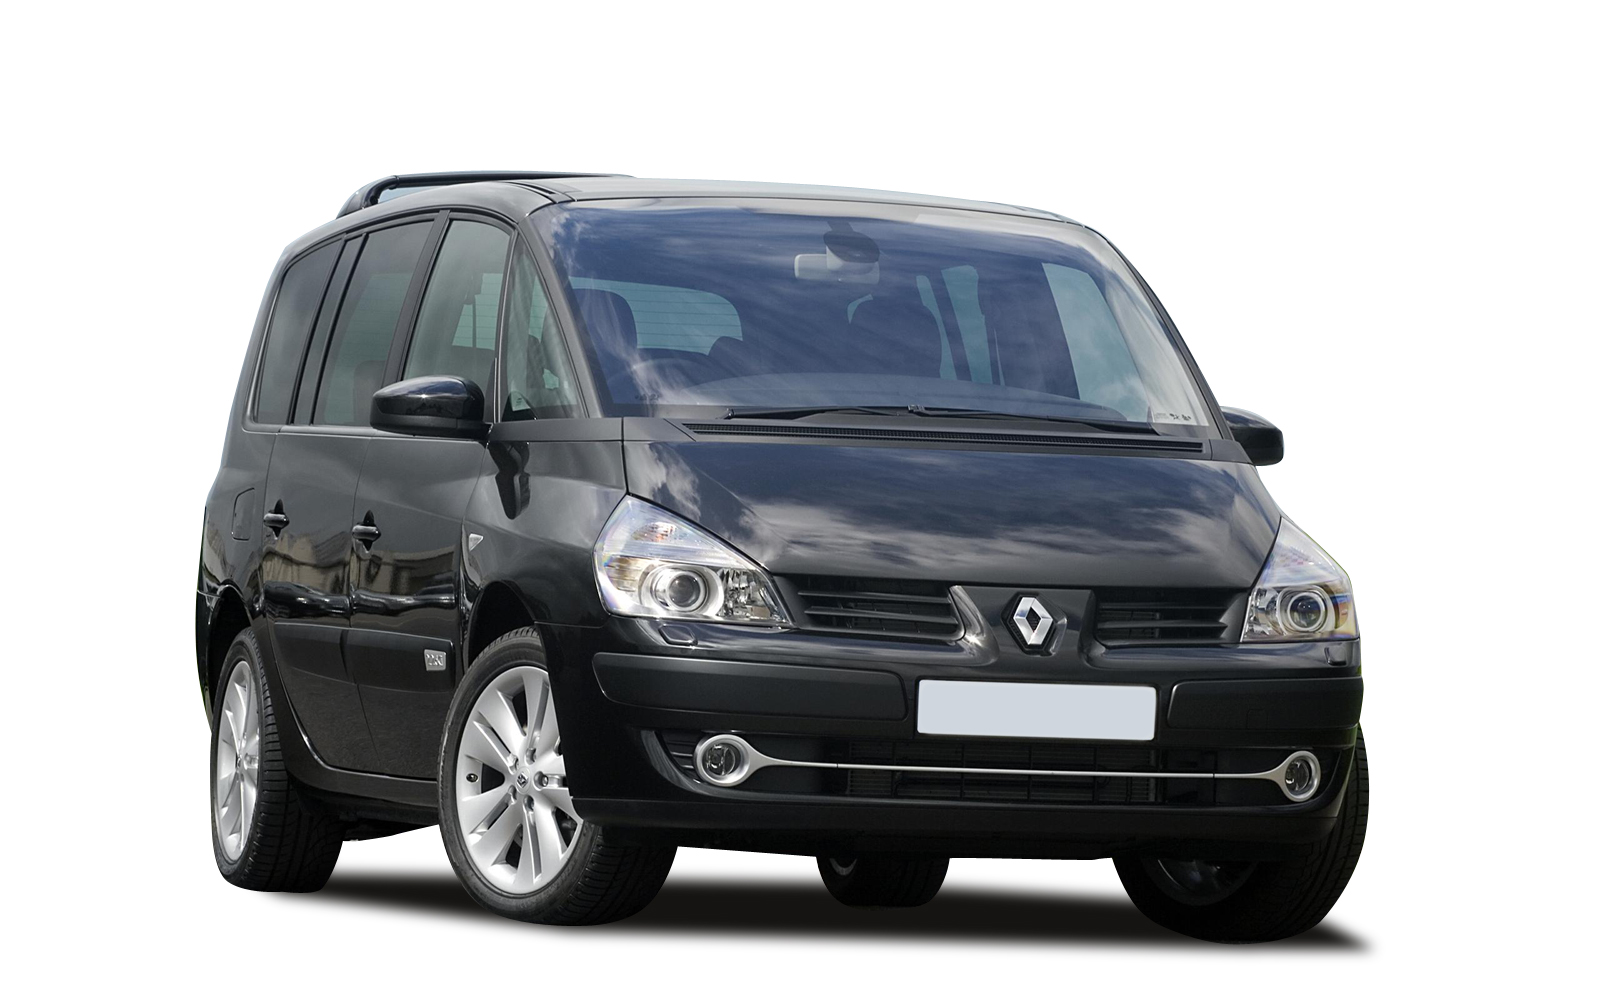 2012 renault espace iv pictures information and specs. Black Bedroom Furniture Sets. Home Design Ideas